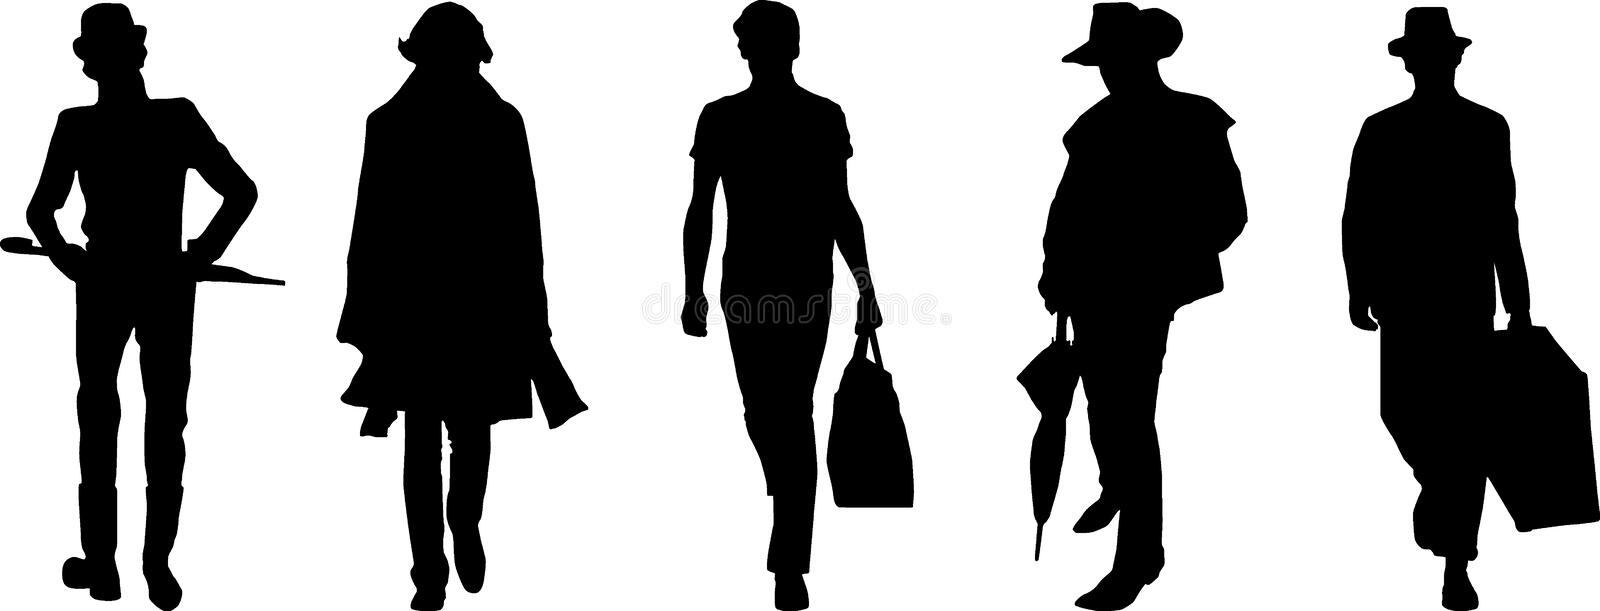 Silhouette fashion men stock photography